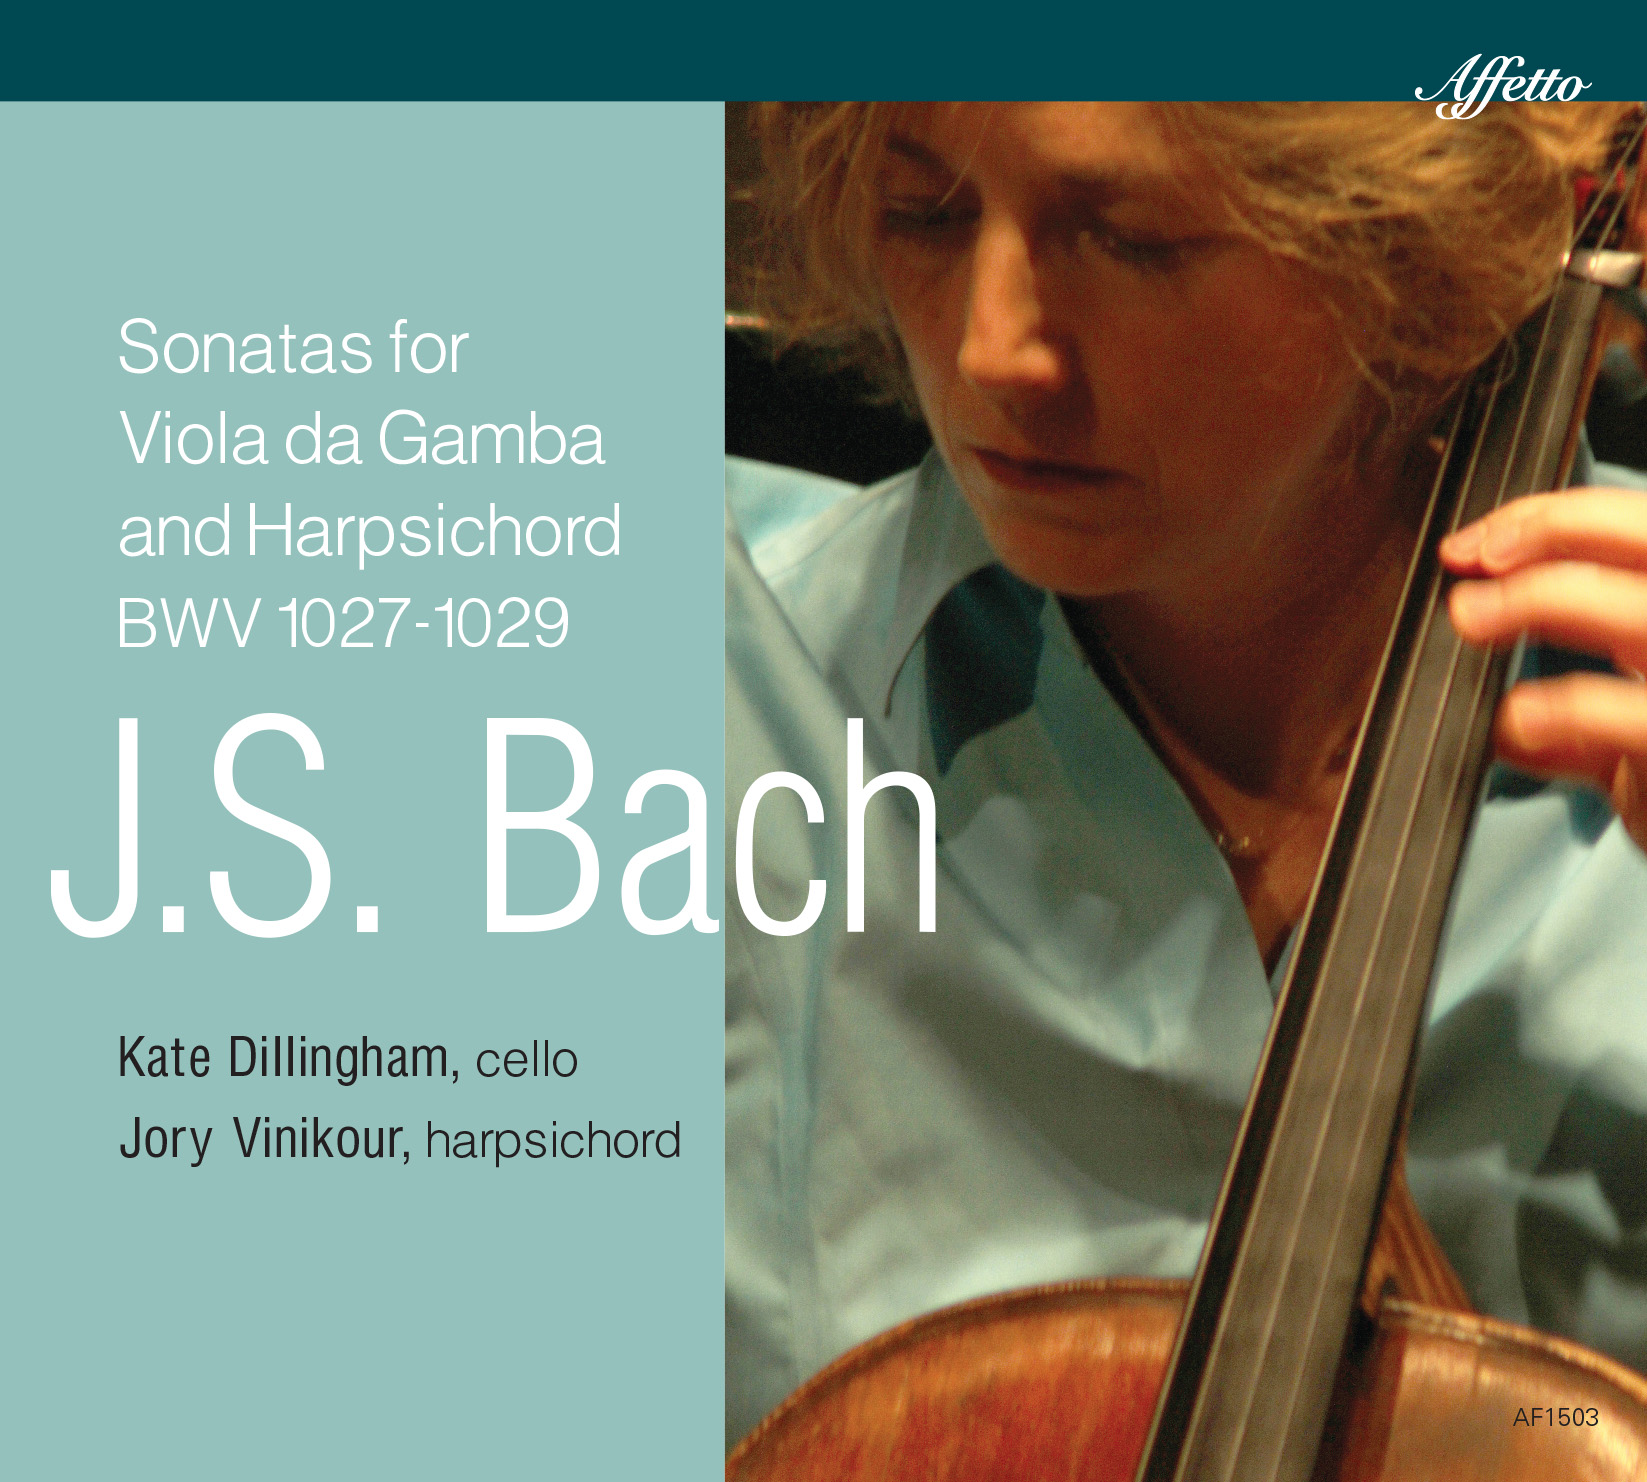 Johann Sebastian Bach: Sonatas for Viola da gamba and cello, BWV 1027 - 1029